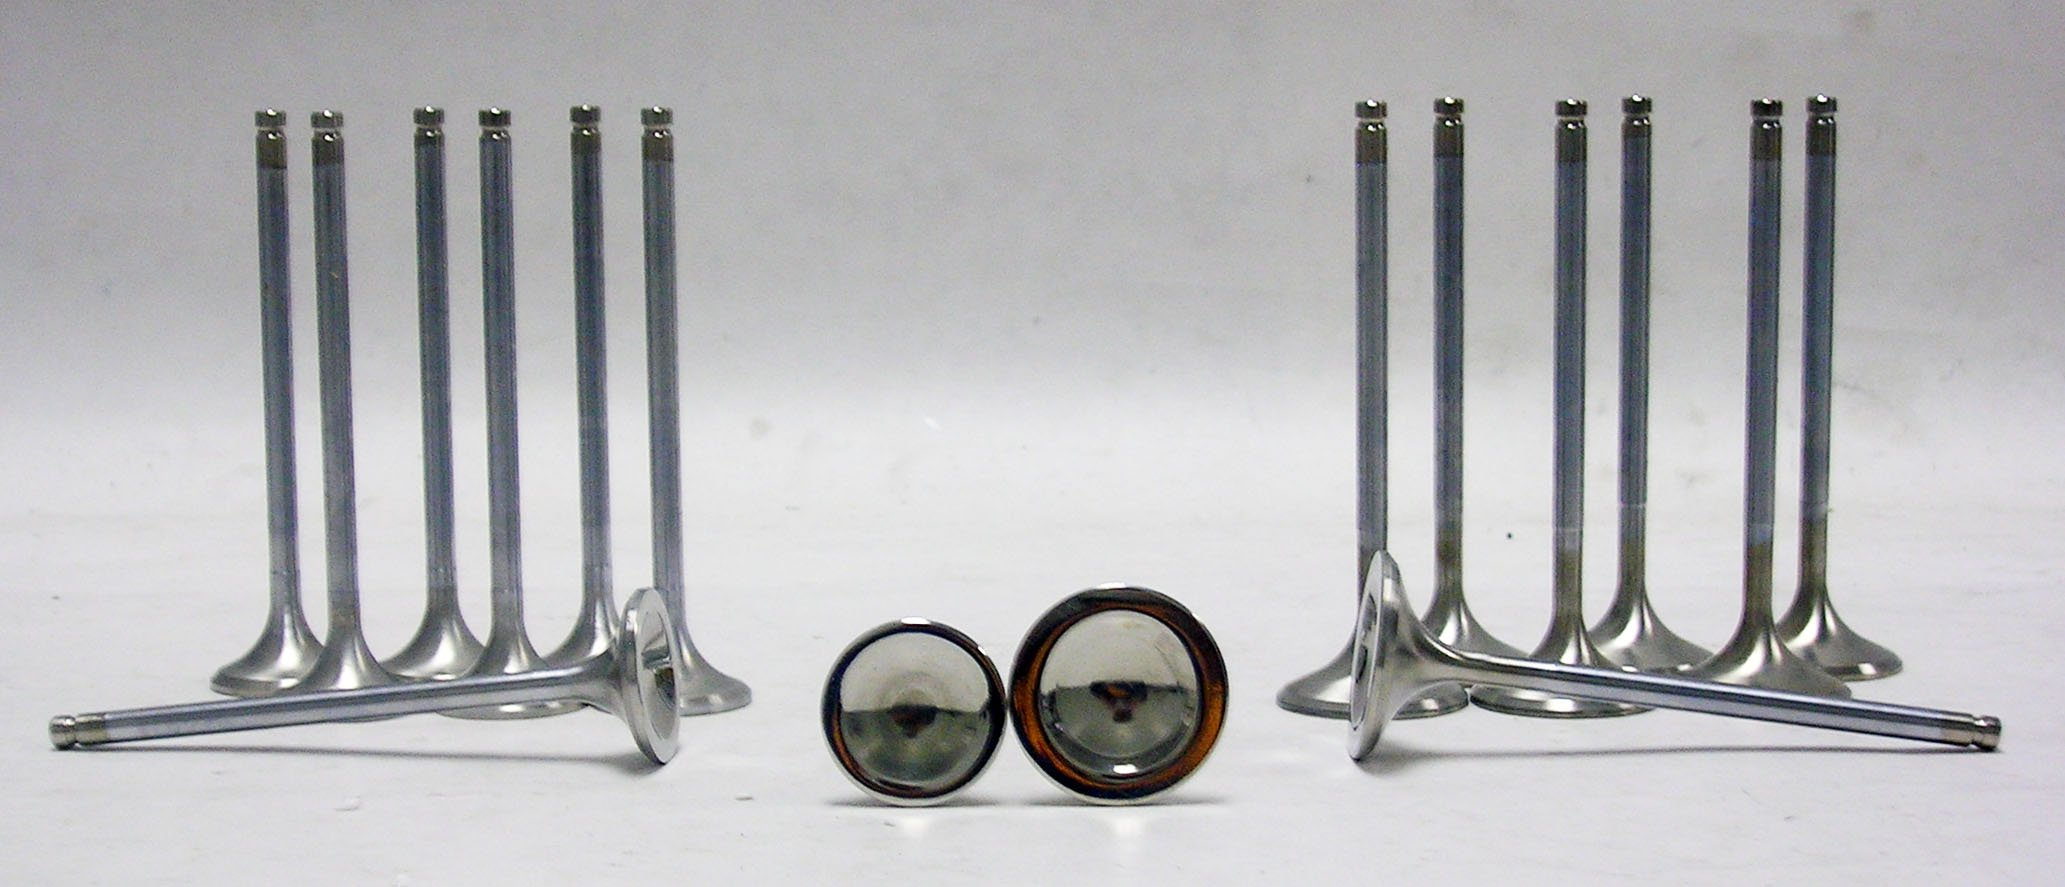 OBX Stainless Steel Exhaust Valve Set Honda Acura Integra Civic Si Del Sol